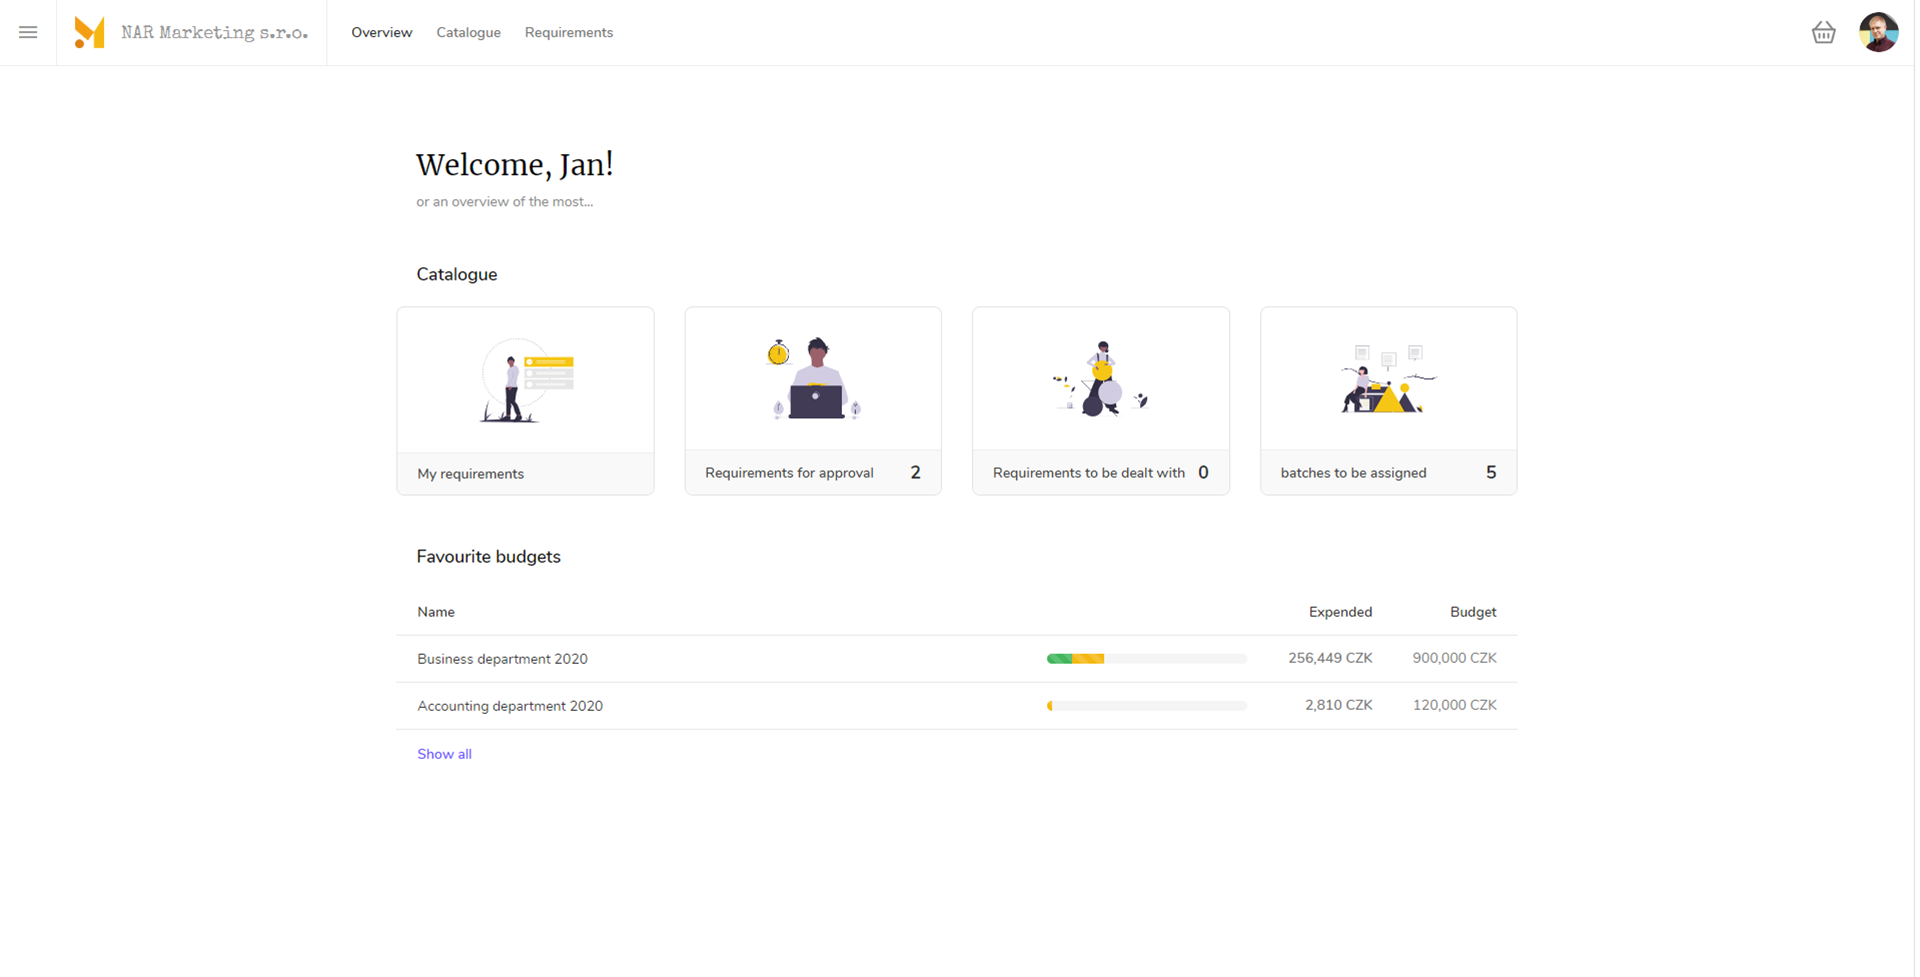 The dashboard displays an overview of the most important information - drawing from defined budgets, requirements for processing, new items in the catalogue, etc.